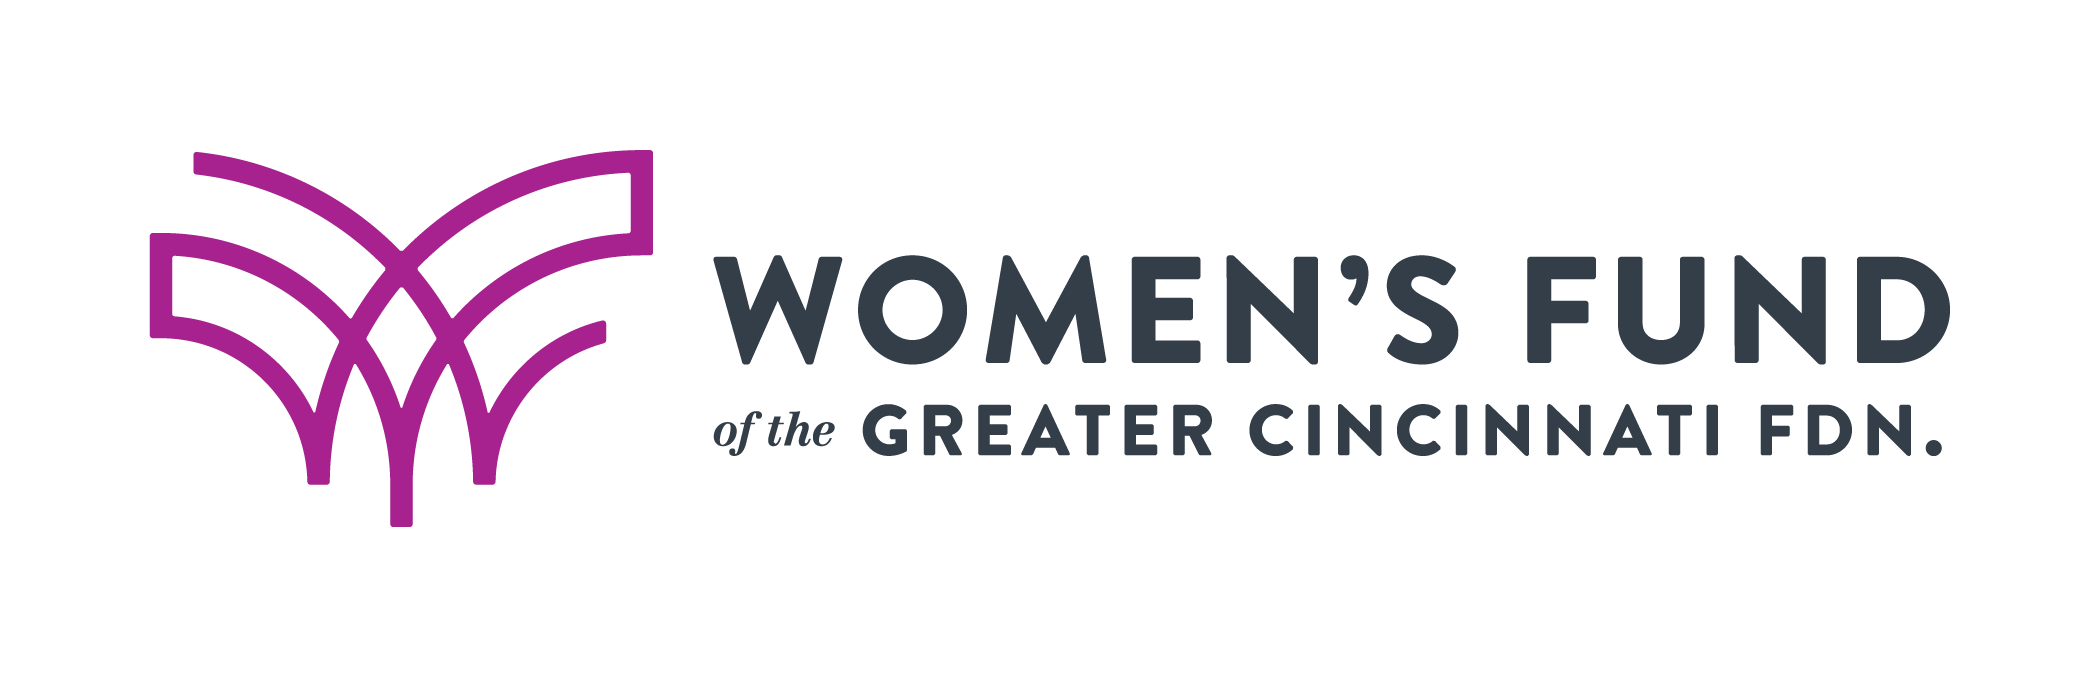 Women's Fund of Greater Cincinnati logo